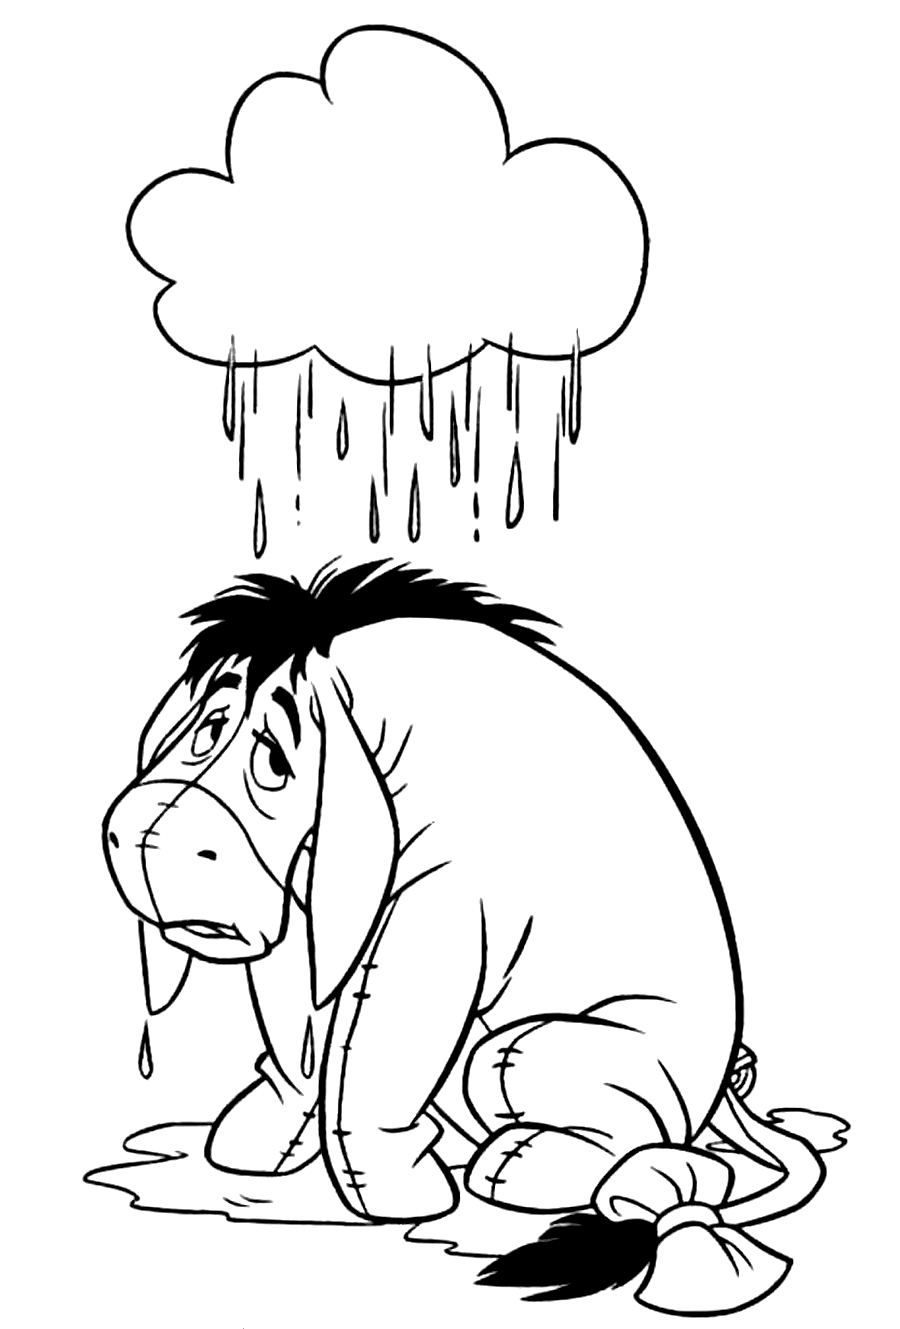 winnie the pooh eor coloring pages | Disney Baby Winnie the Pooh Coloring Pages | Top Free ...